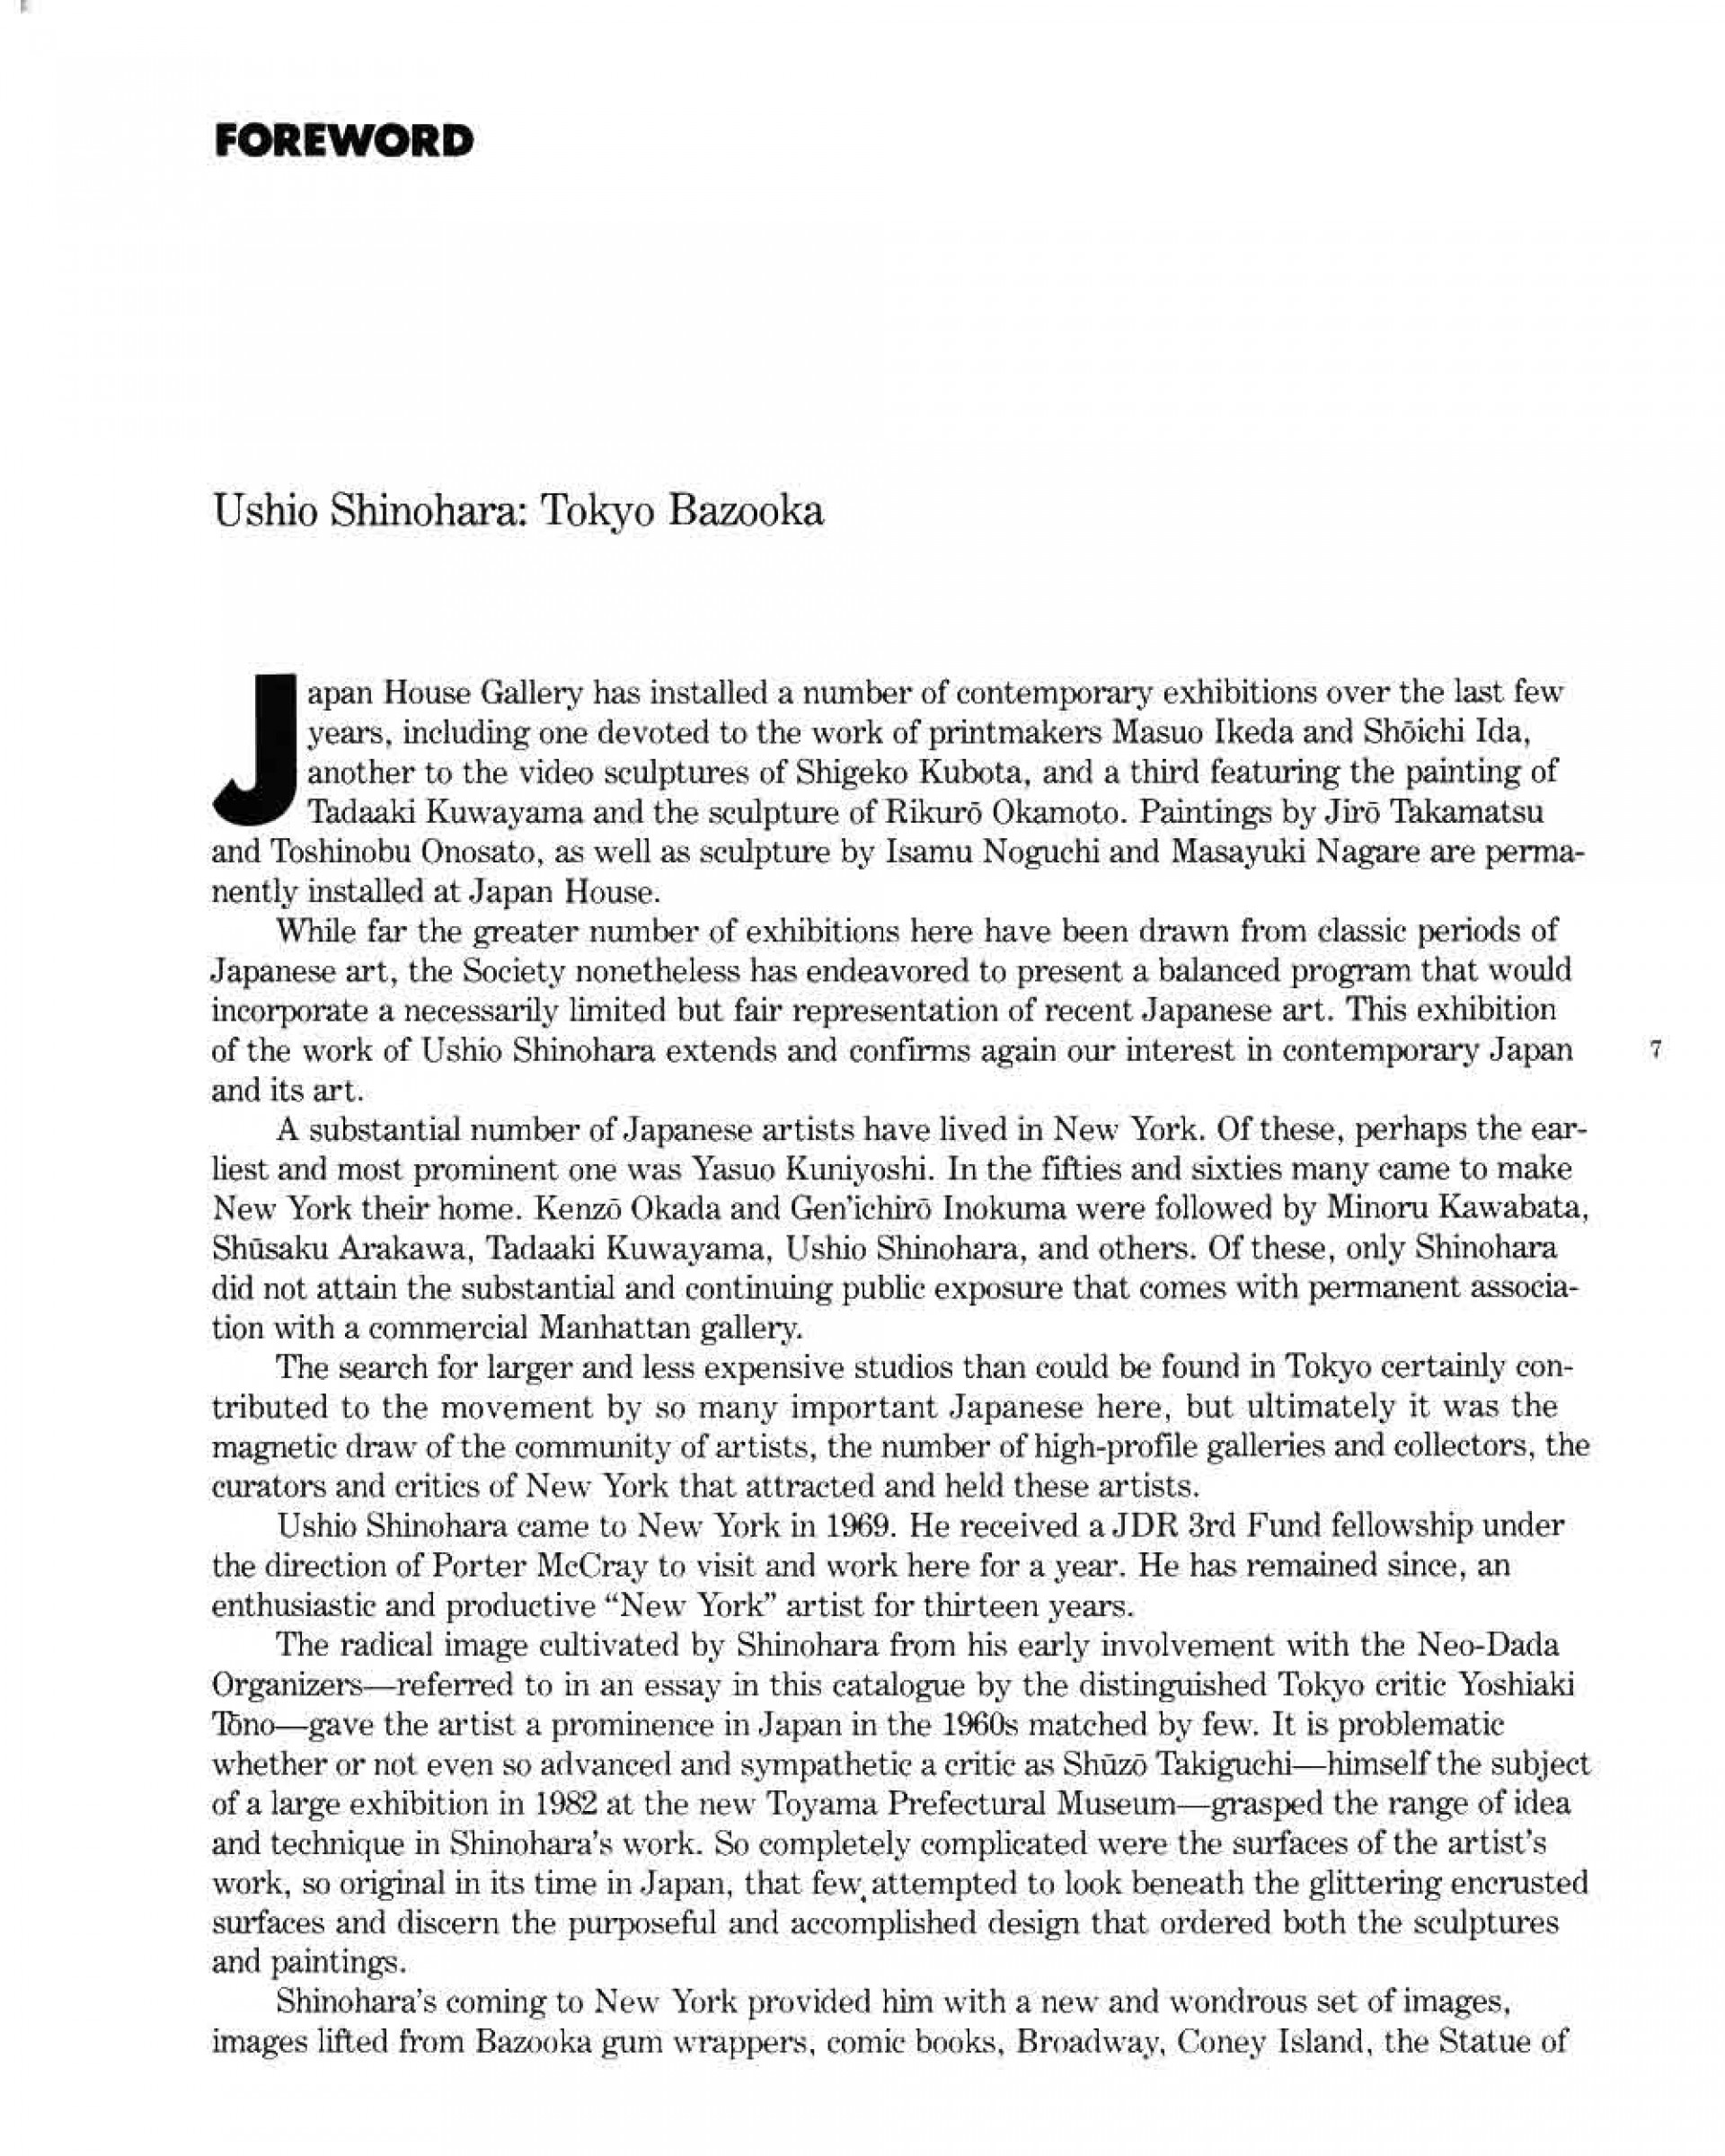 007 Ushio Shinohara Tokyo Bazooka Essay Pg 1 Quoting In An Frightening Article Mla Harvard How To Cite Shakespeare Quotes 1920